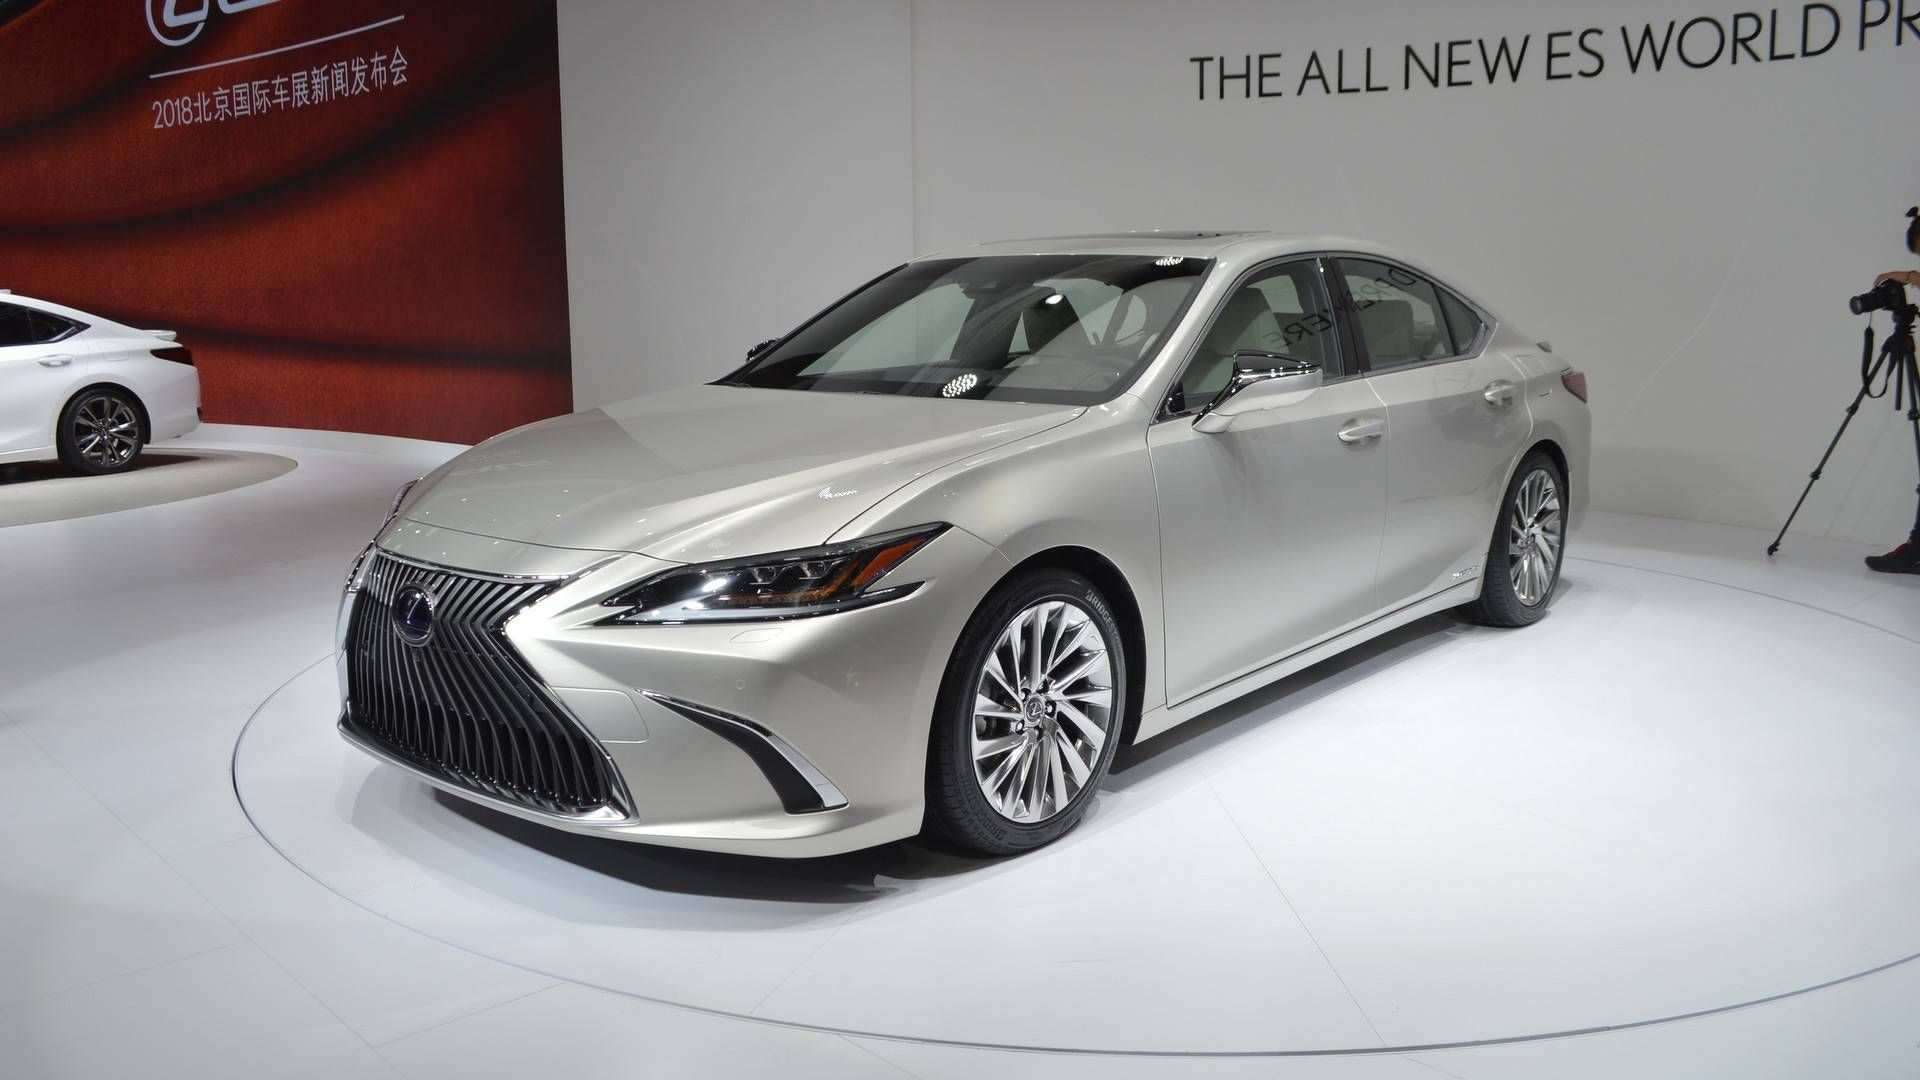 83 All New When Lexus 2019 Come Out Ratings